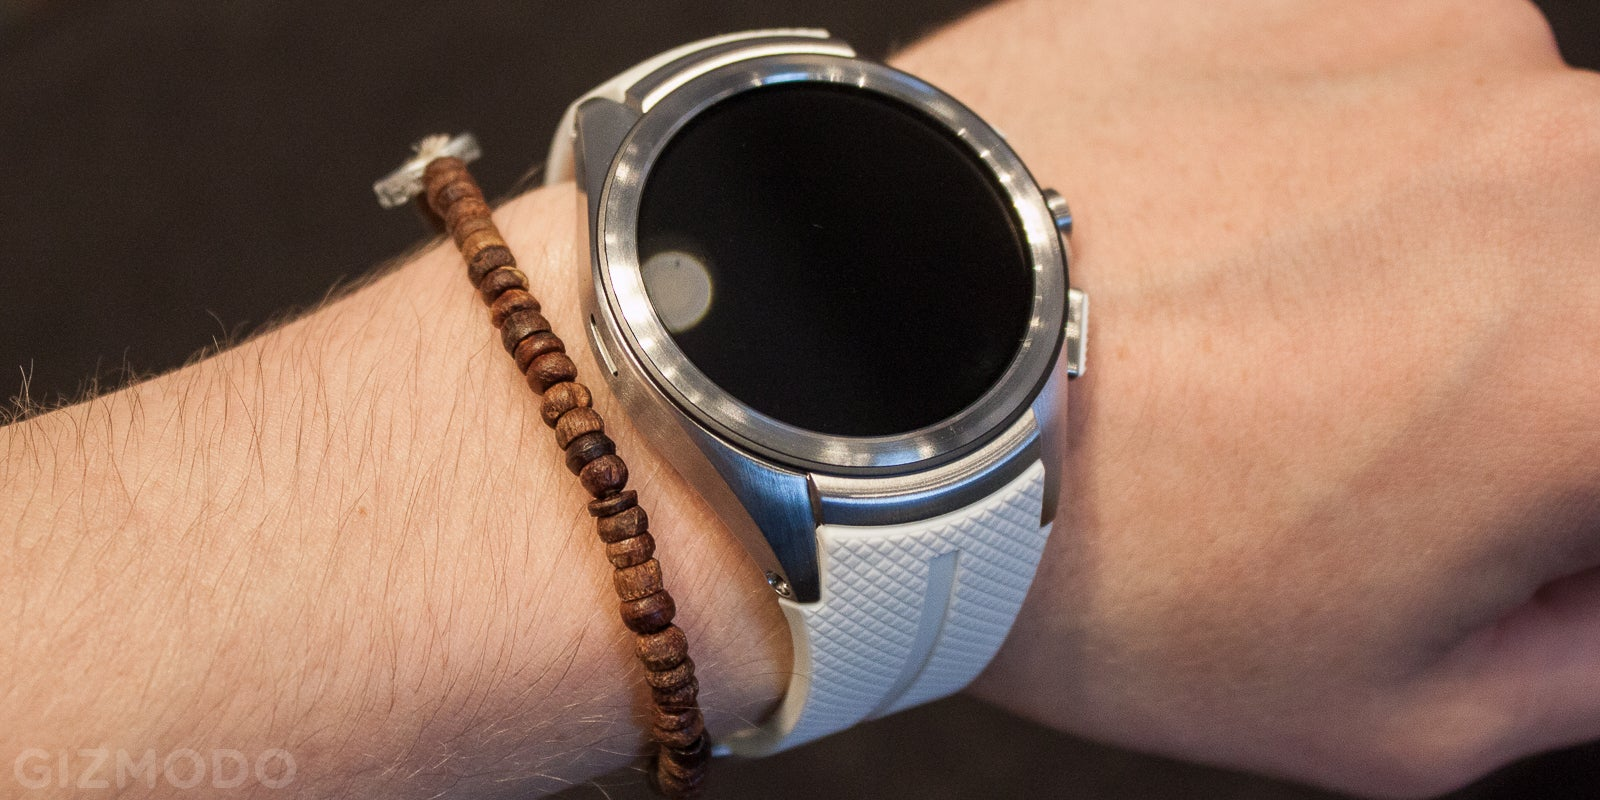 The LG Watch Urbane 2 Is Android Wear's First LTE Smartwatch, And It's Big As Hell